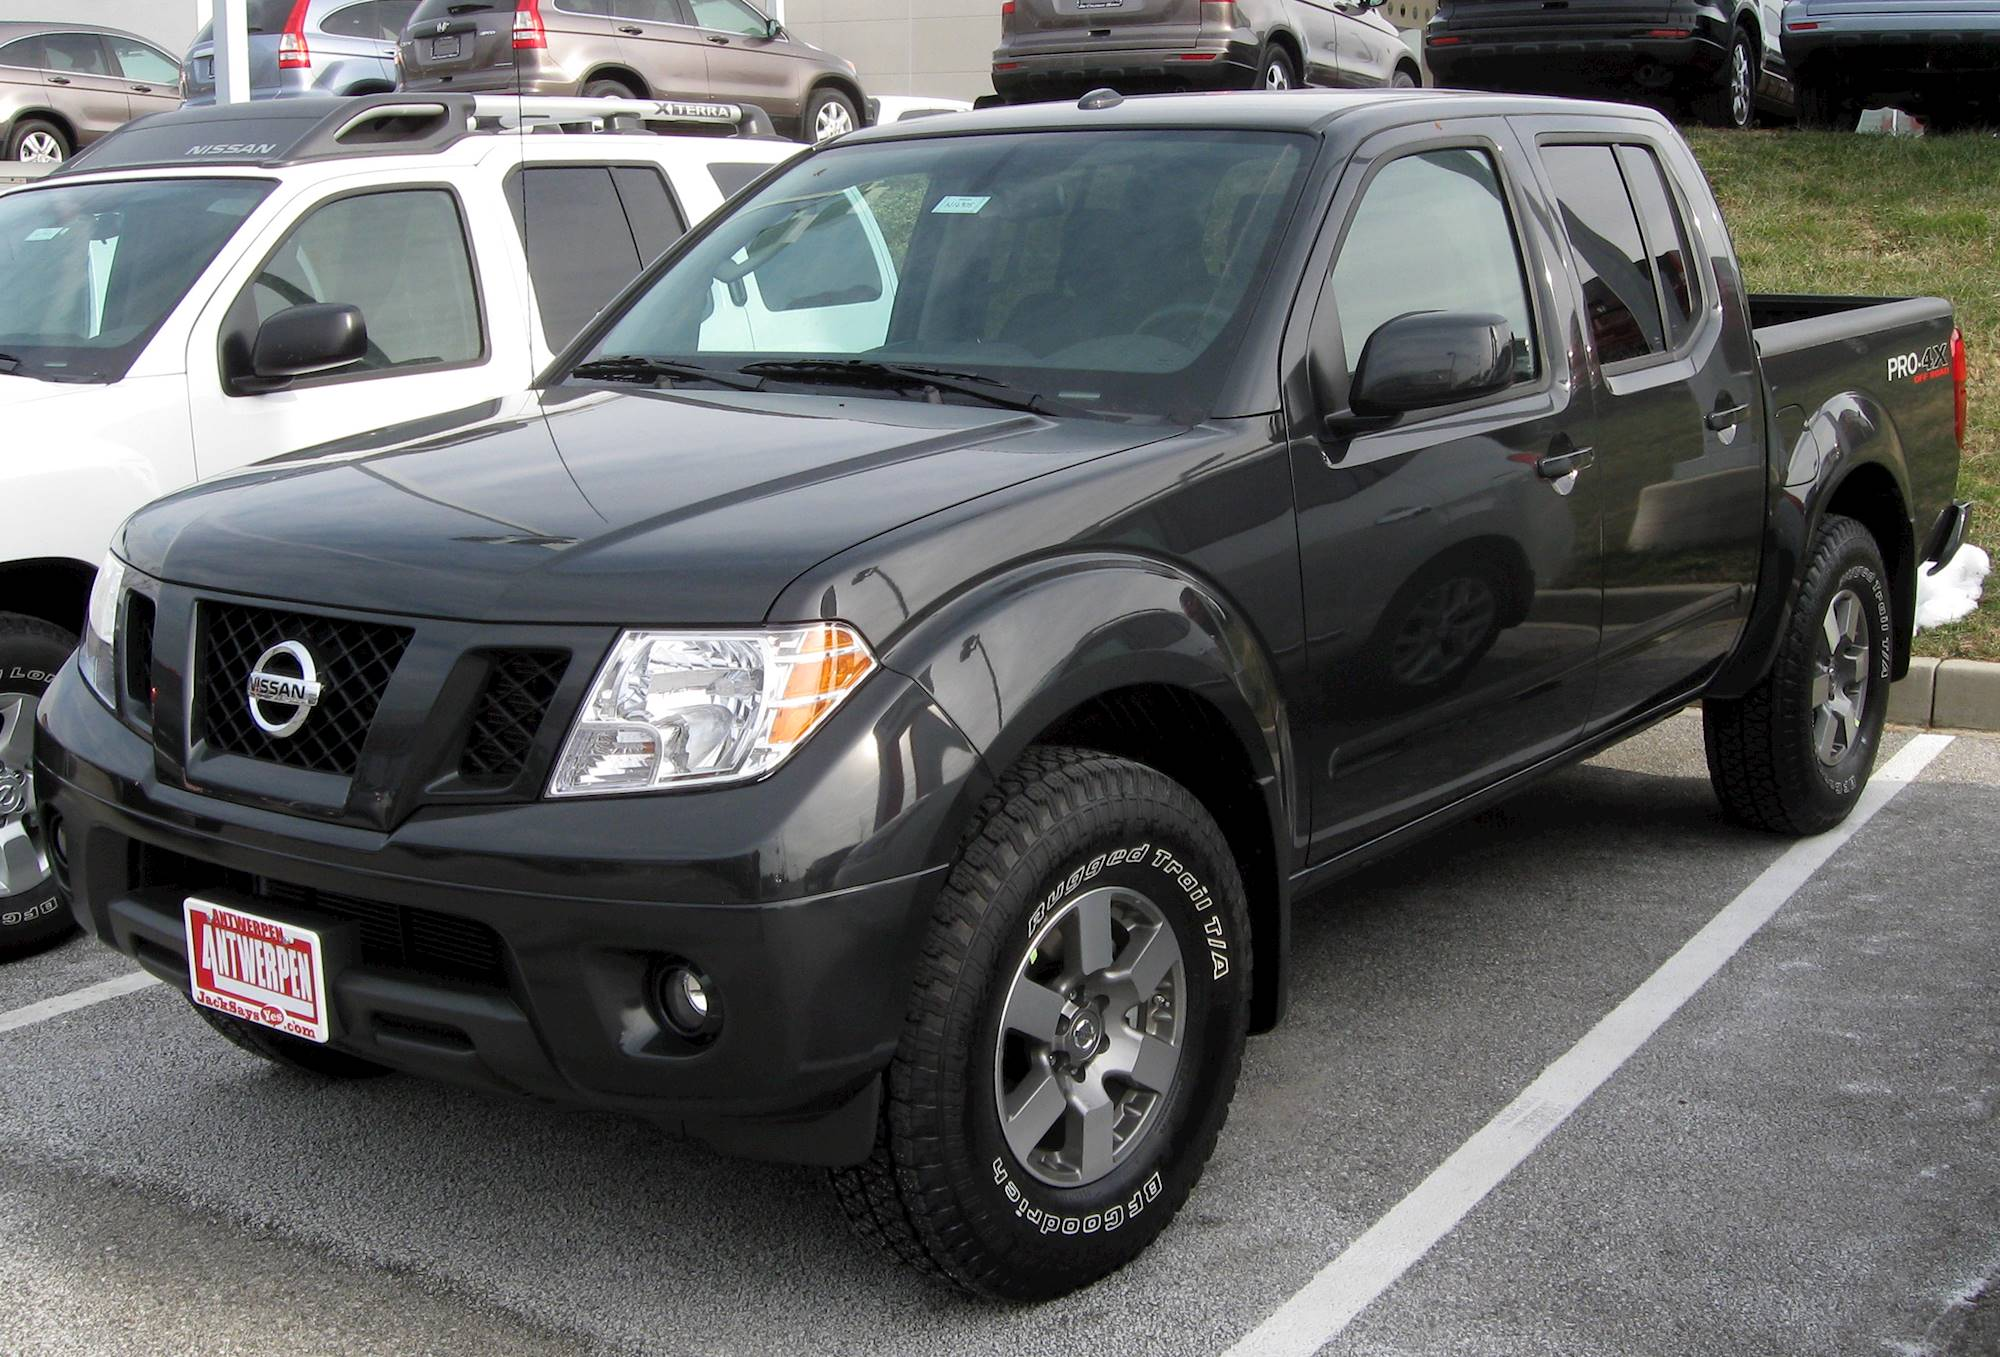 2003 Nissan Frontier SE V6   Crew Cab Pickup 3.3L V6 4x4 Auto W/Leather 4.7  Ft Bed